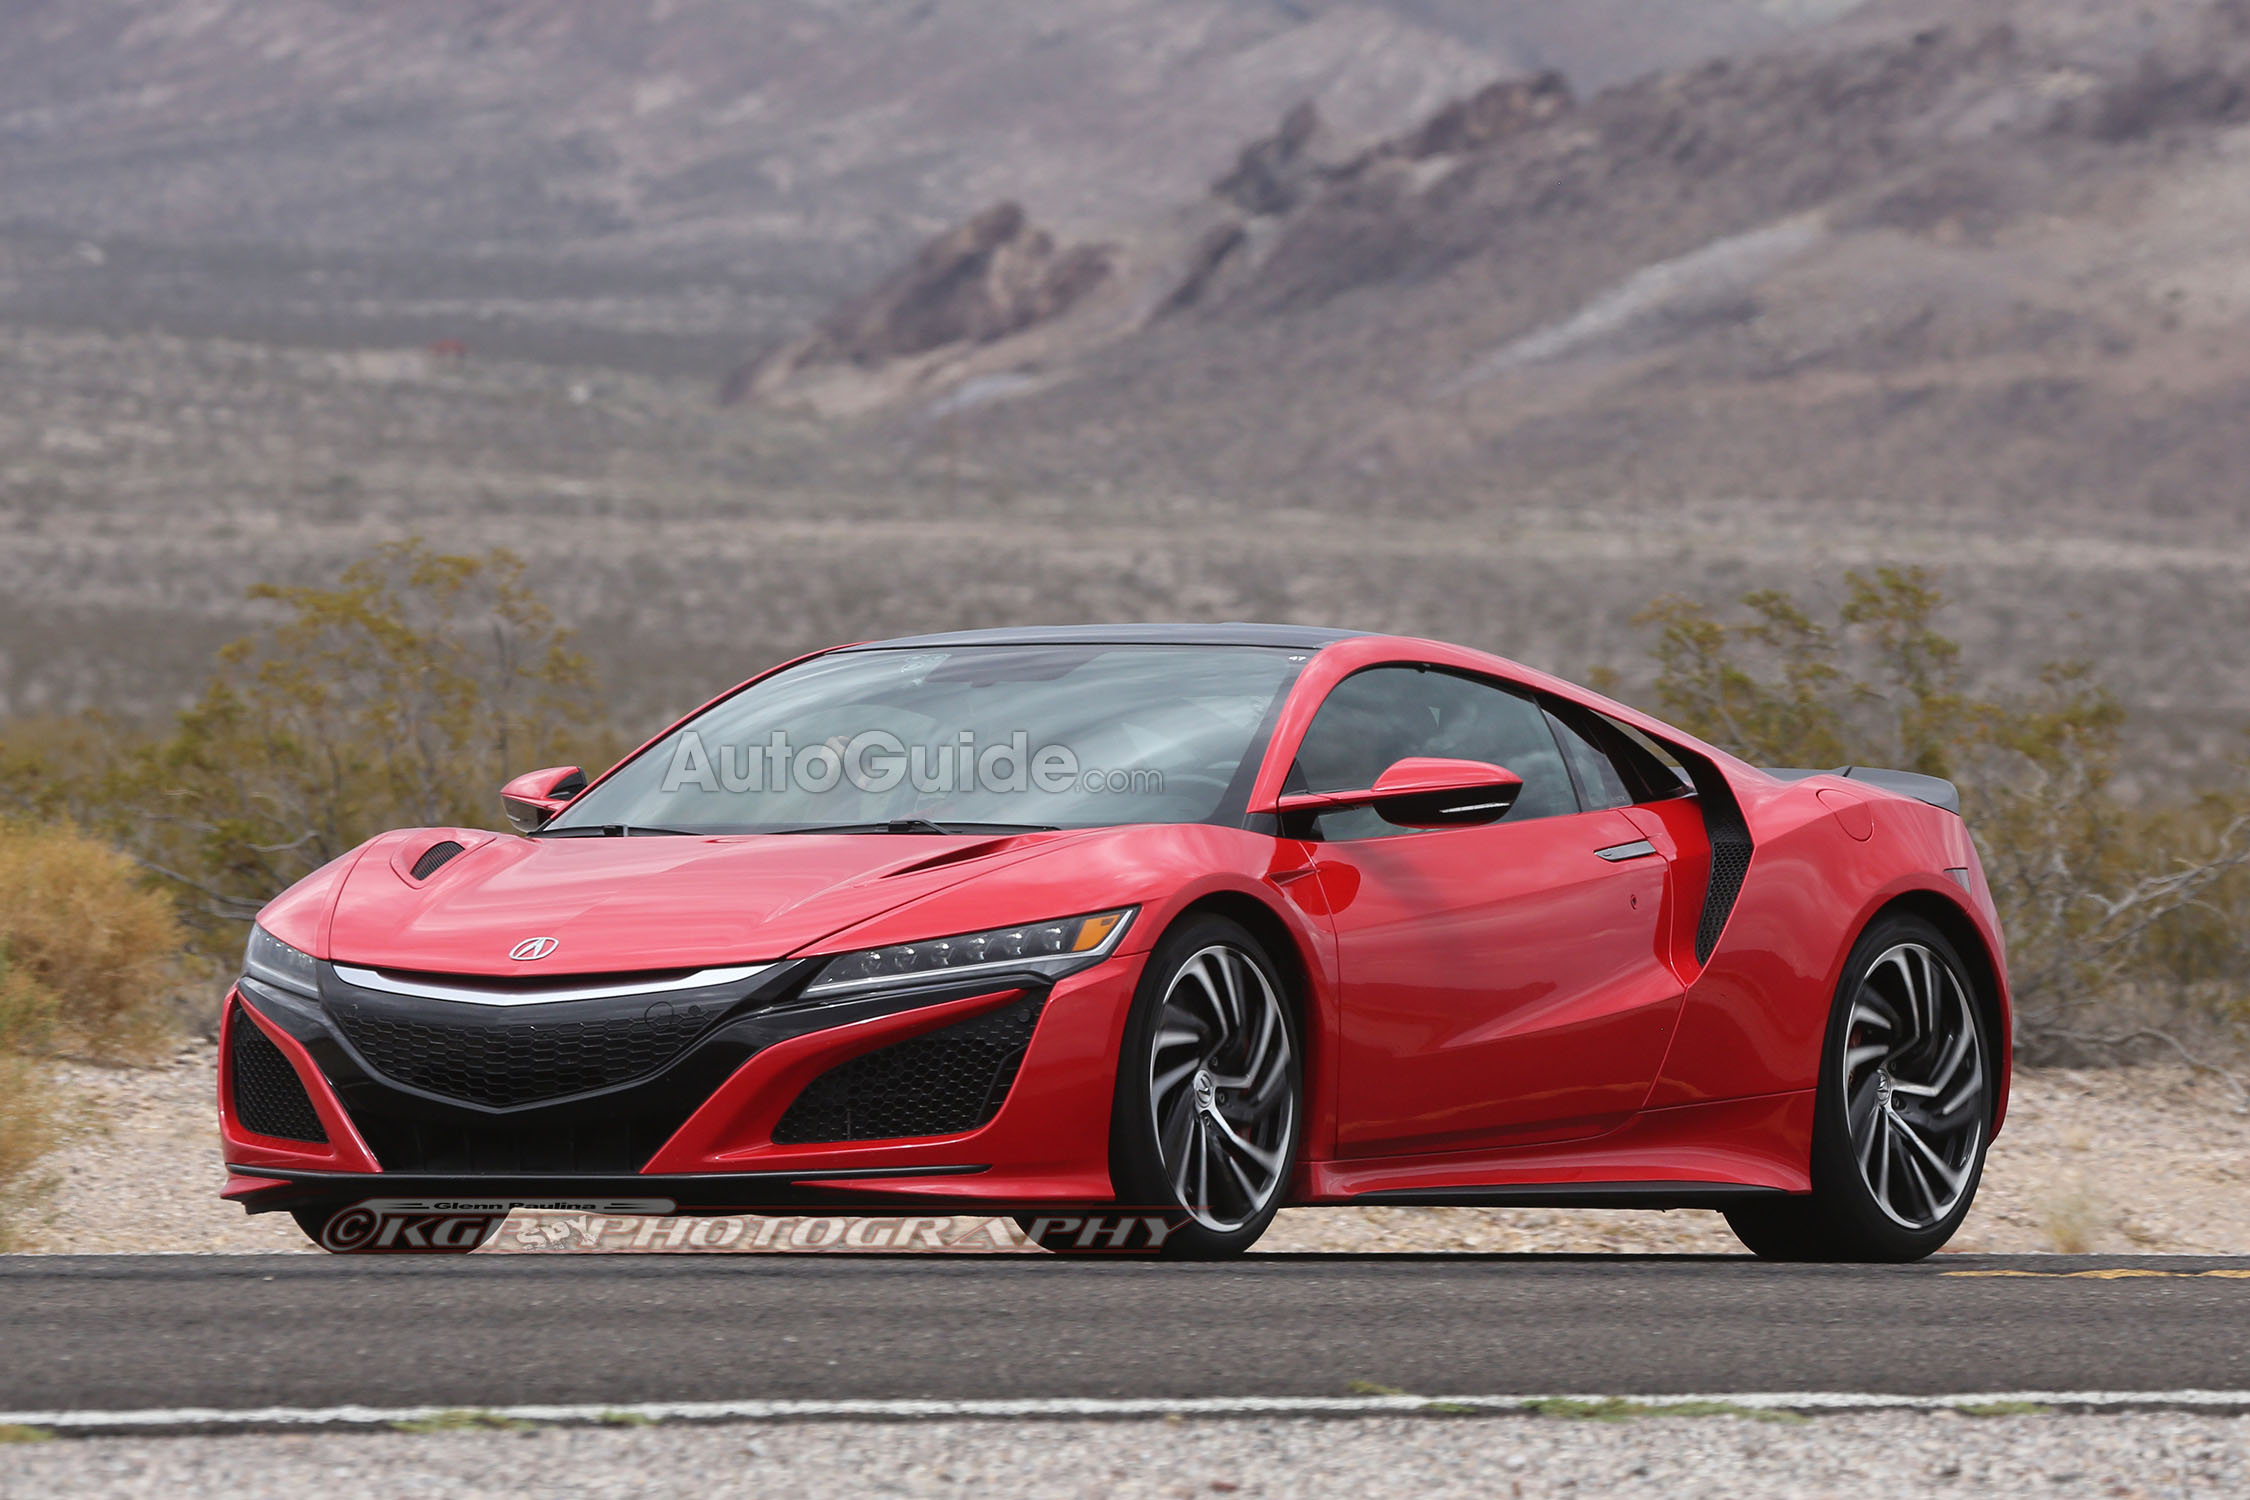 2016 acura nsx red spy pics 7